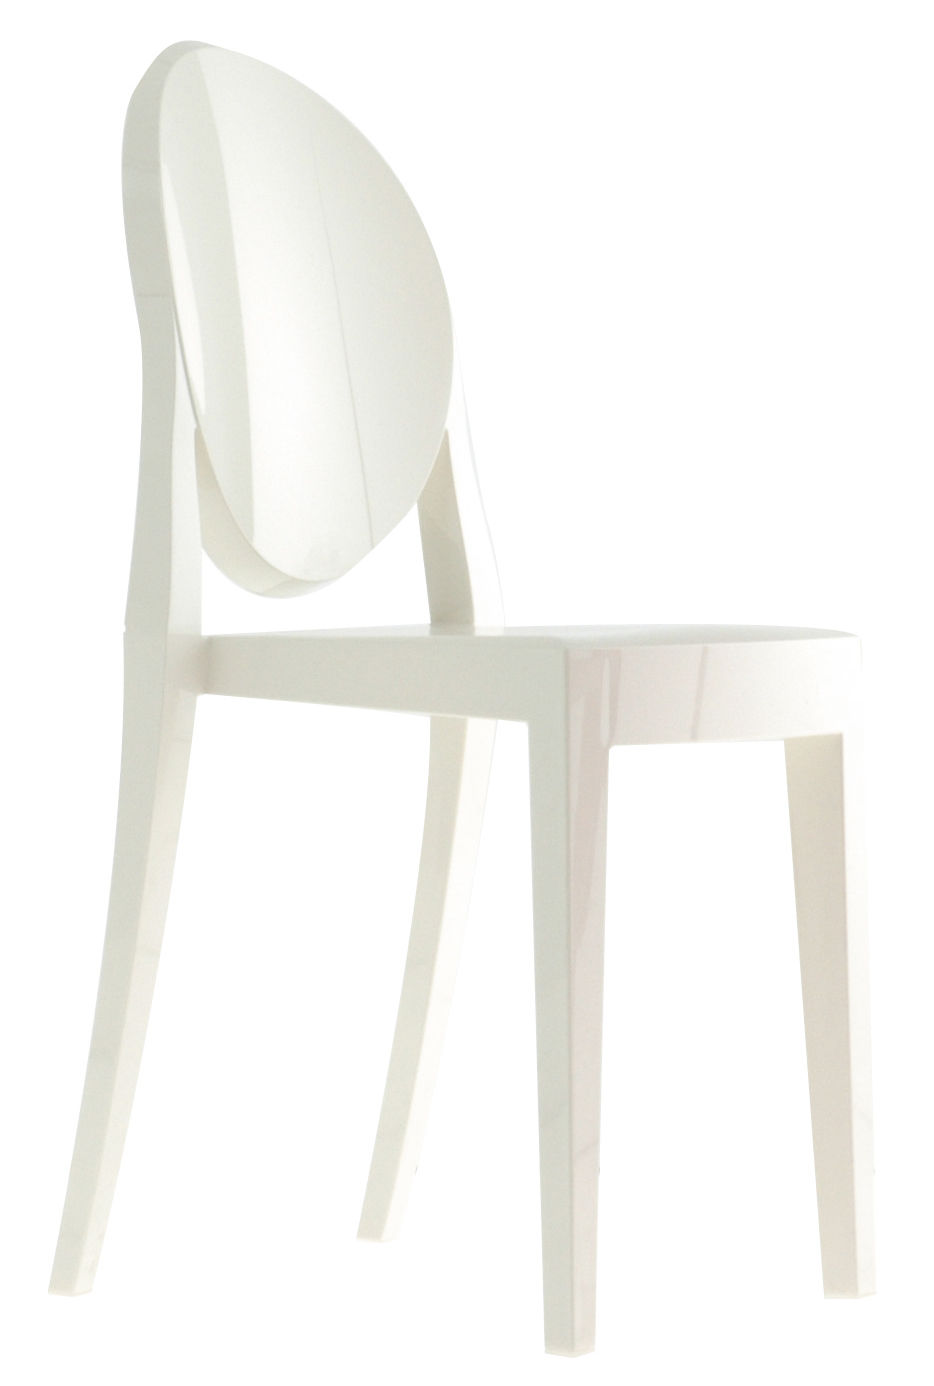 Chaises Plastiques Blanches Chaise Empilable Victoria Ghost Opaque Polycarbonate Kartell